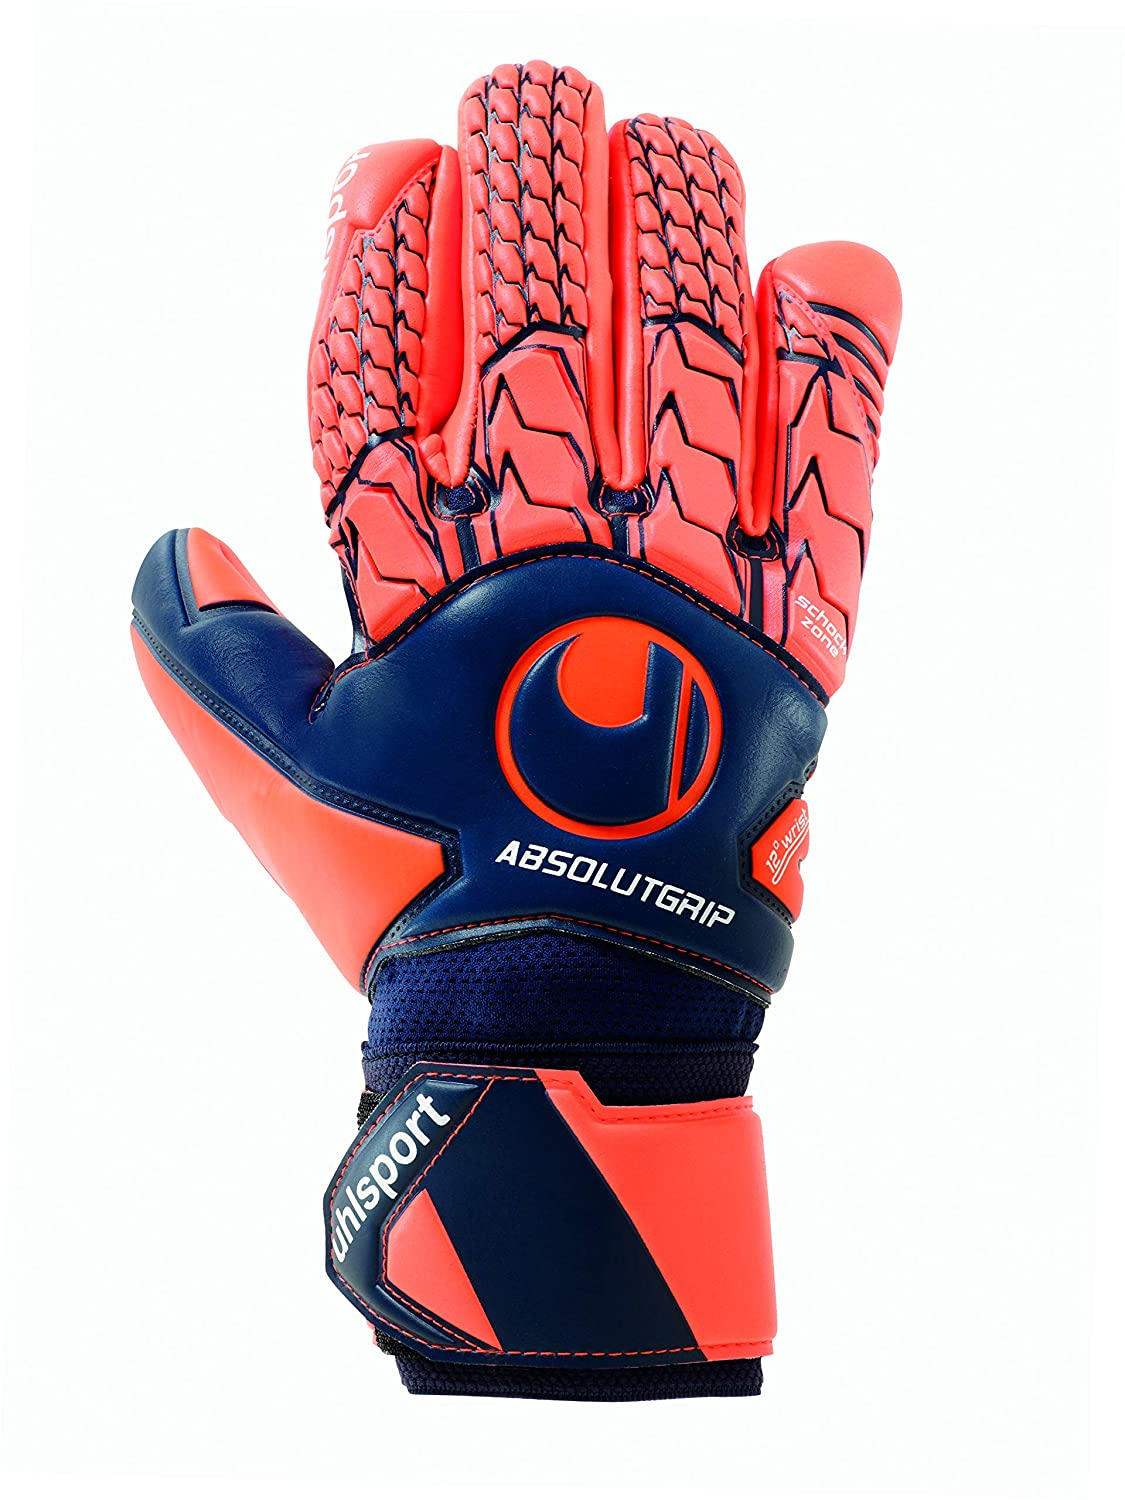 Uhlsport Next Level Absolutgrip Finger Surround Torwart-Handschuhe